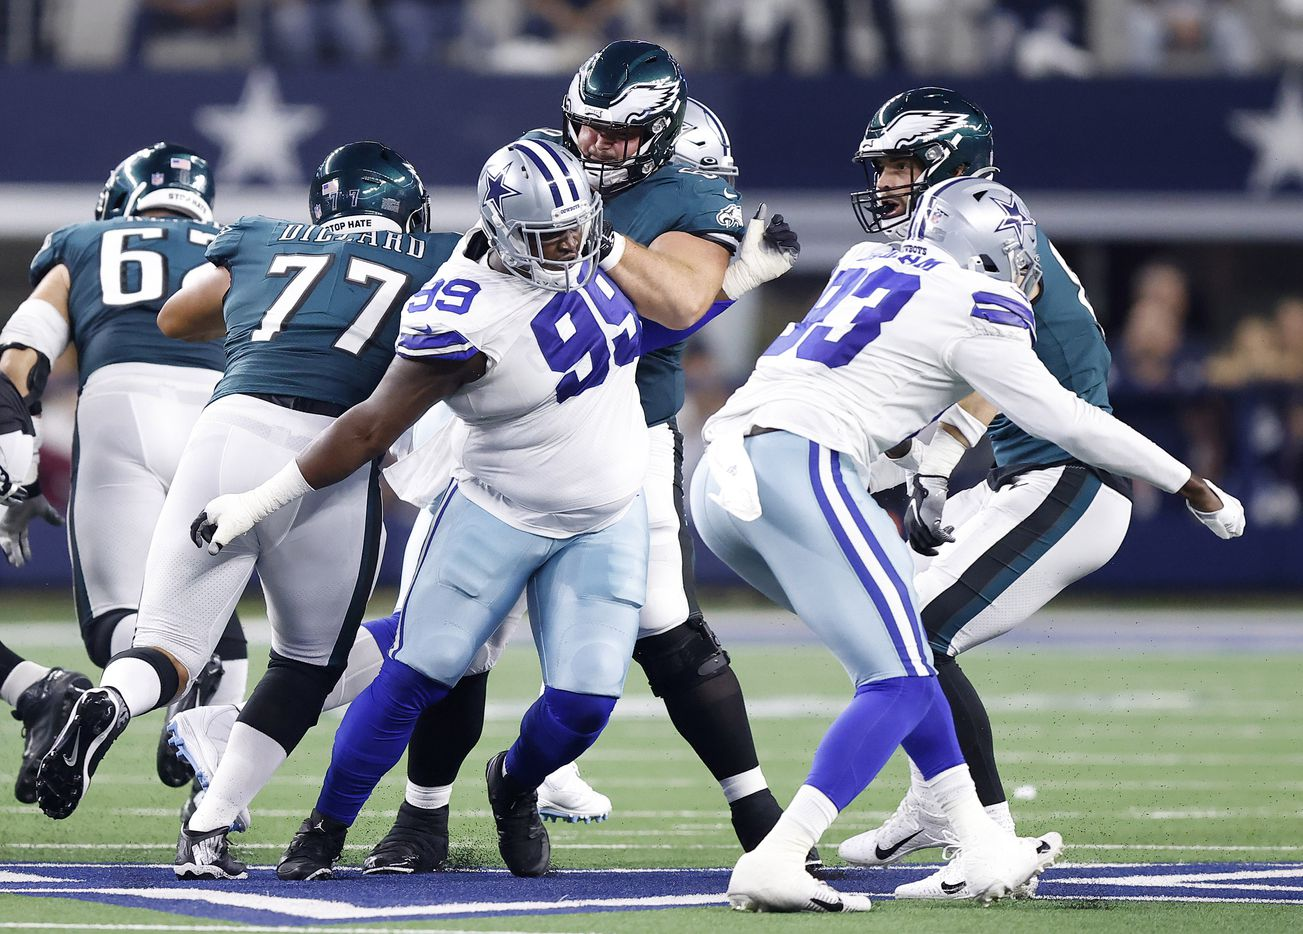 Dallas Cowboys defensive tackle Justin Hamilton (99) and defensive end Tarell Basham (93) take on the Philadelphia Eagles defense during the second quarter at AT&T Stadium in Arlington, Monday, September 27, 2021. (Tom Fox/The Dallas Morning News)